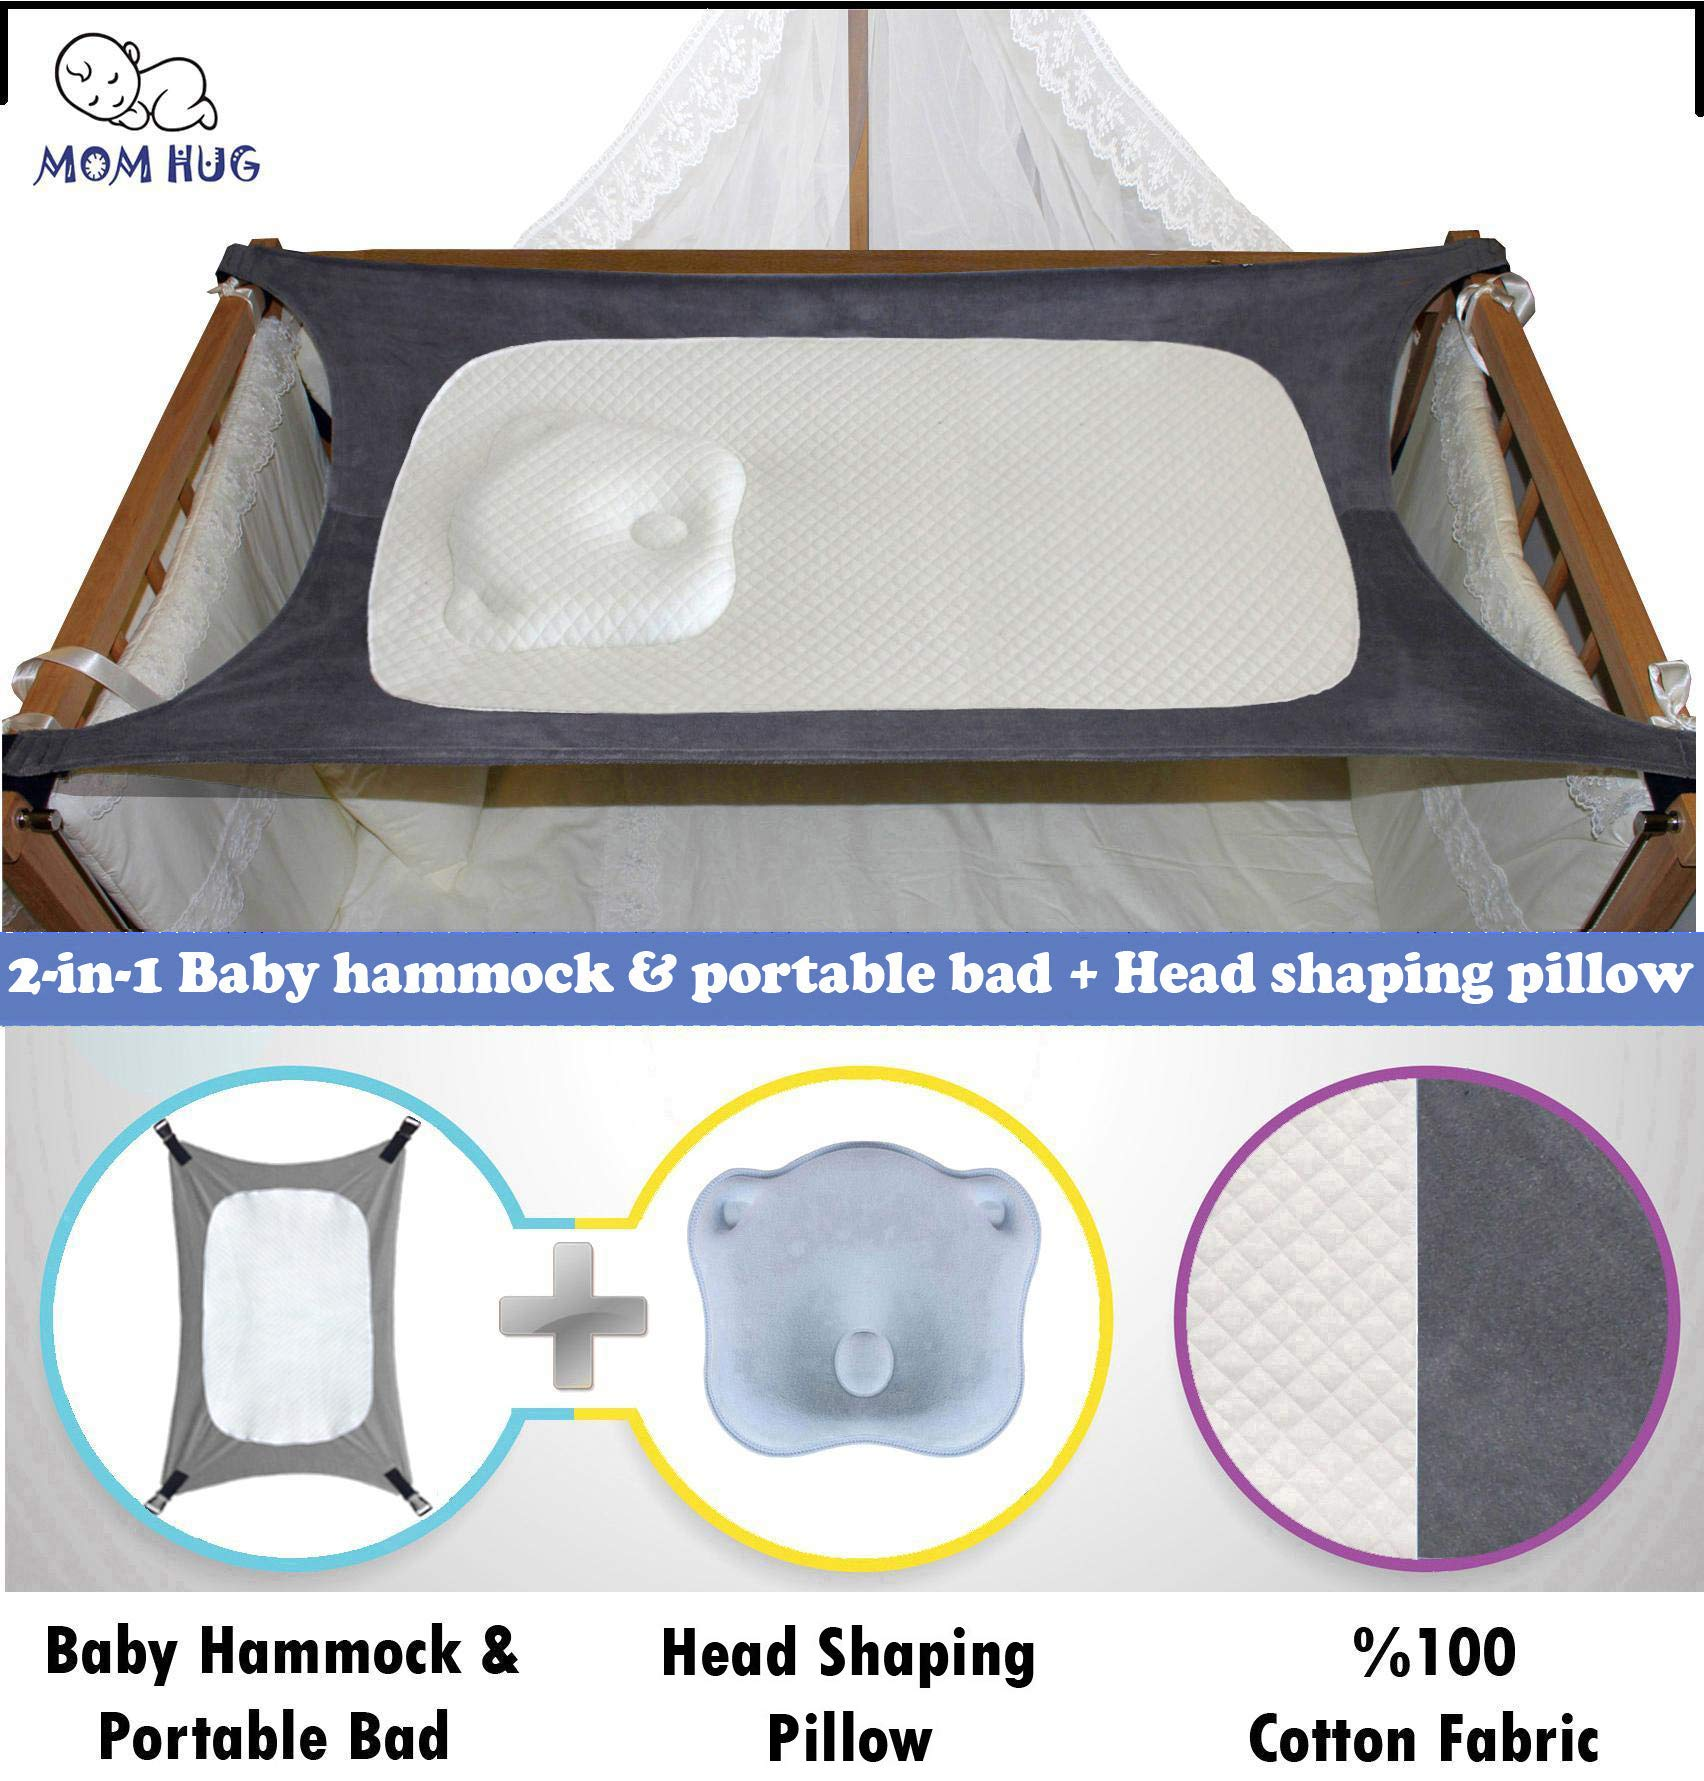 2-in-1 Head Shaping Pillow Backed Newborn Baby Hammock for Crib and Portable Bed,%100 Cotton Comfortable,Strong Safety Measures Quality Assured Breathable Enhanced Nursery Womb Bassinet